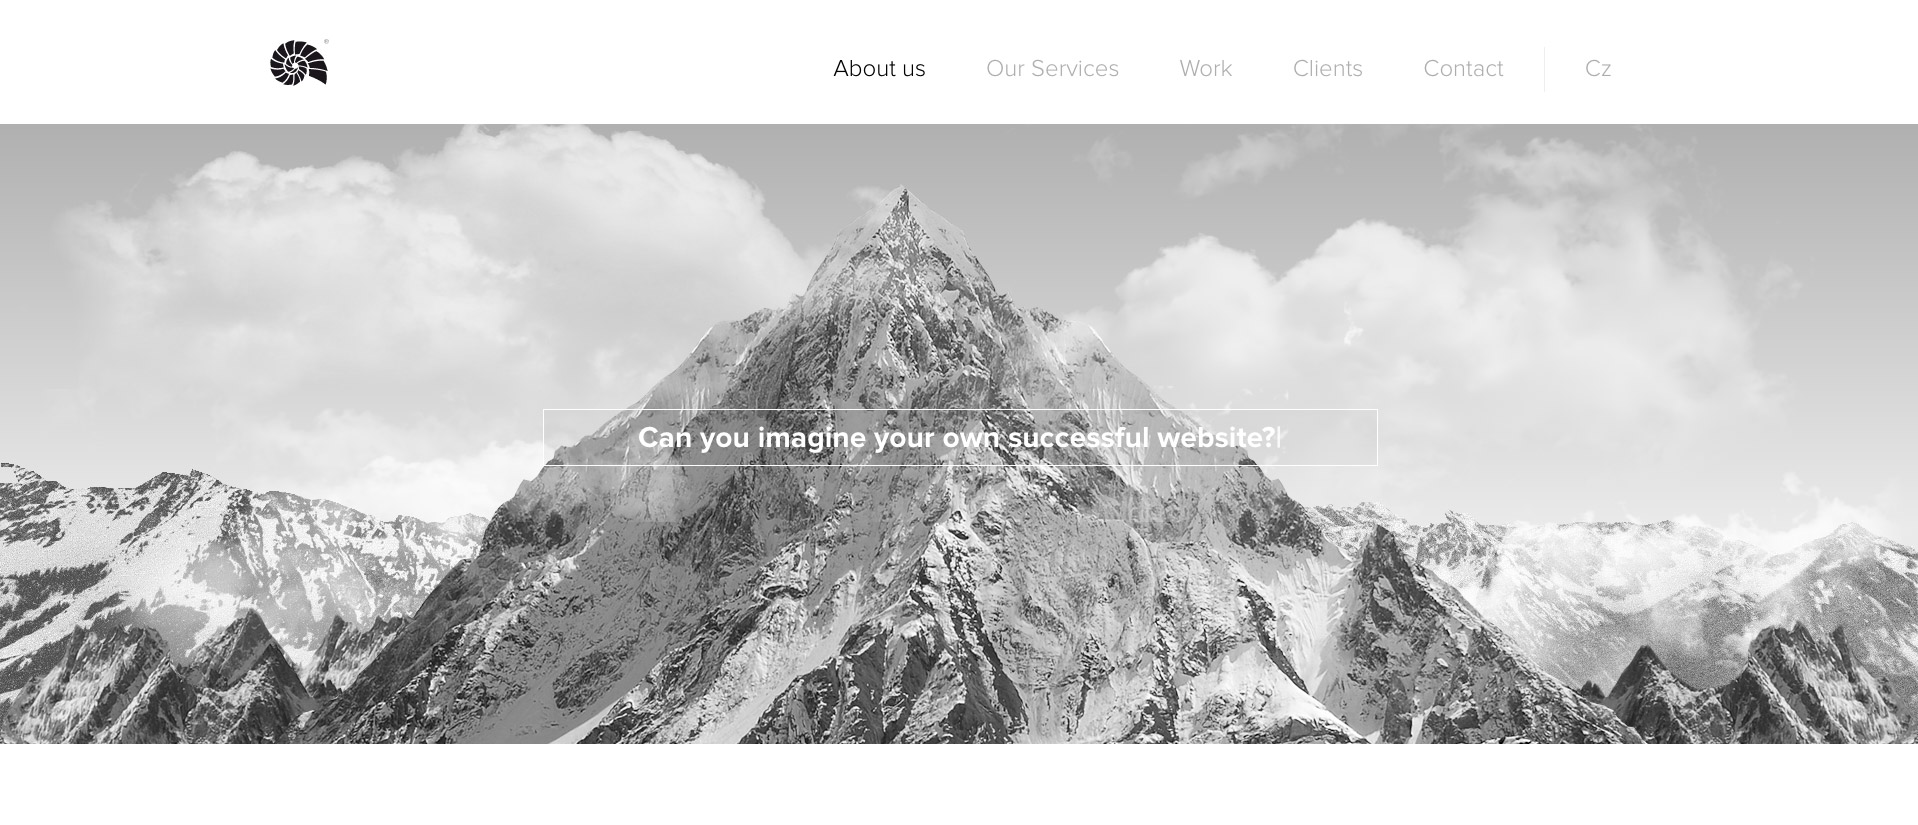 Homepage - Client of Web design Studio GRAFIQUE Brno